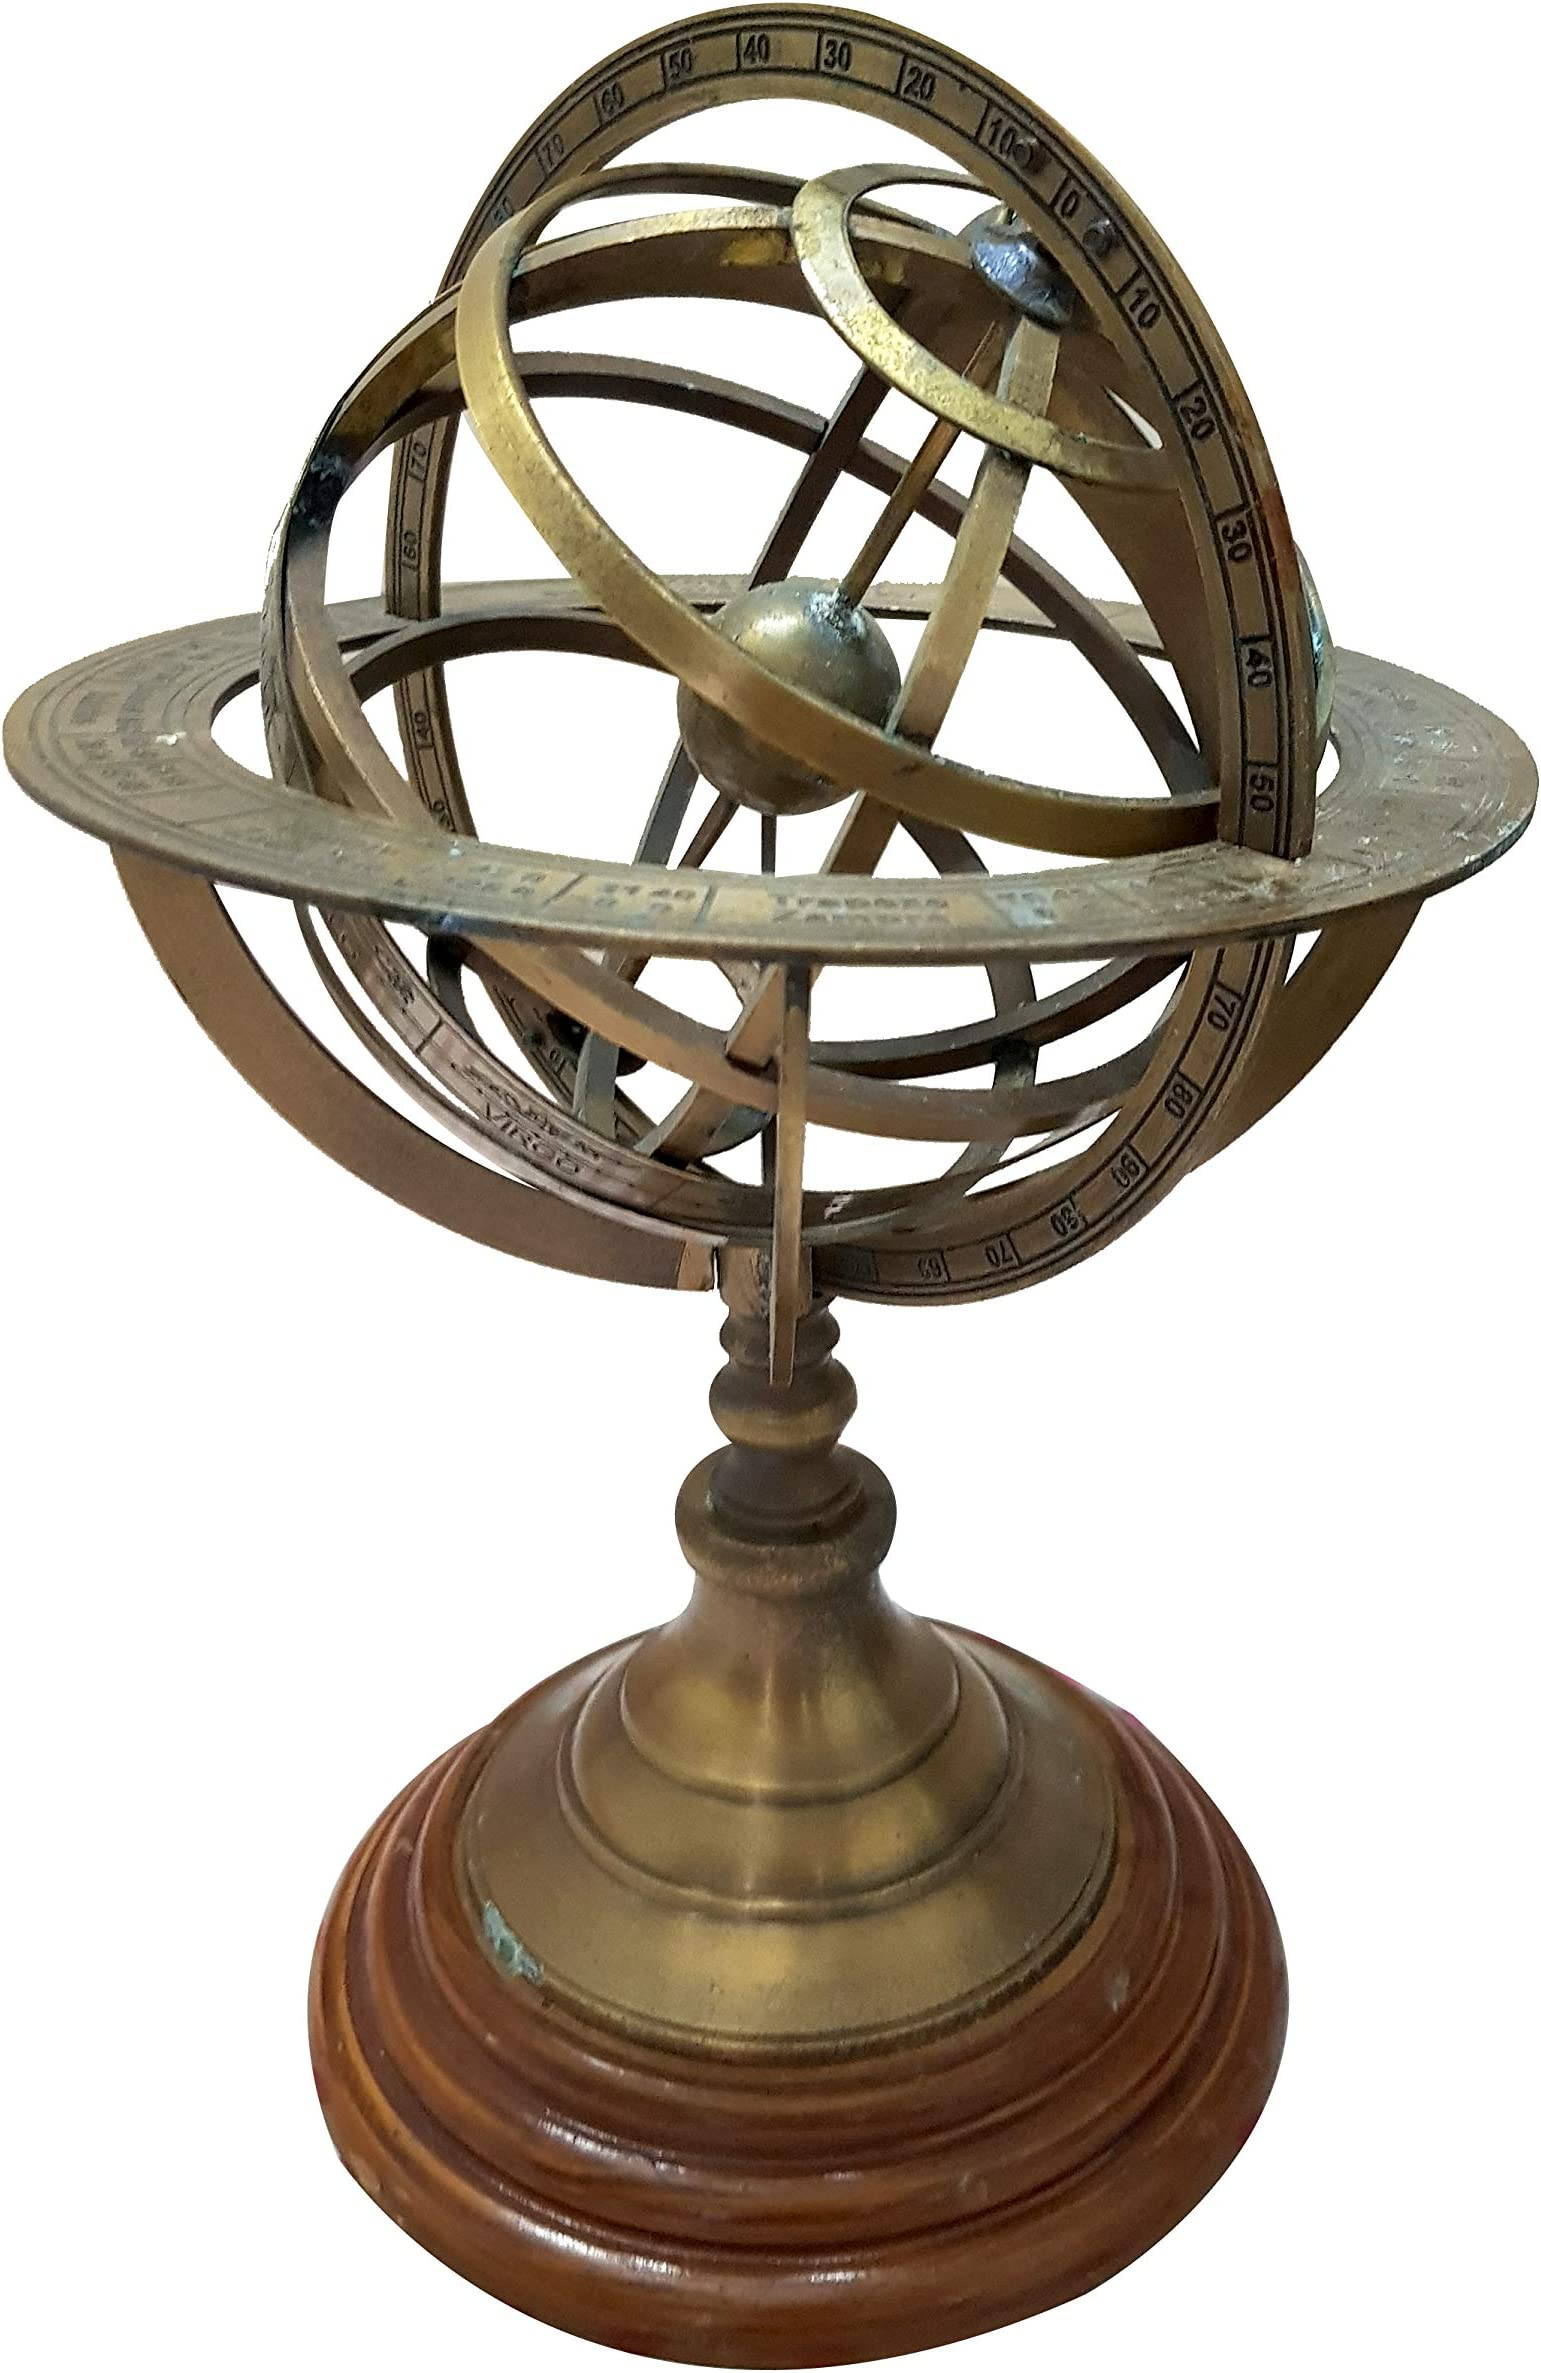 Brass Armillary Sphere Astrolabe On Wooden... THORINSTRUMENTS with device